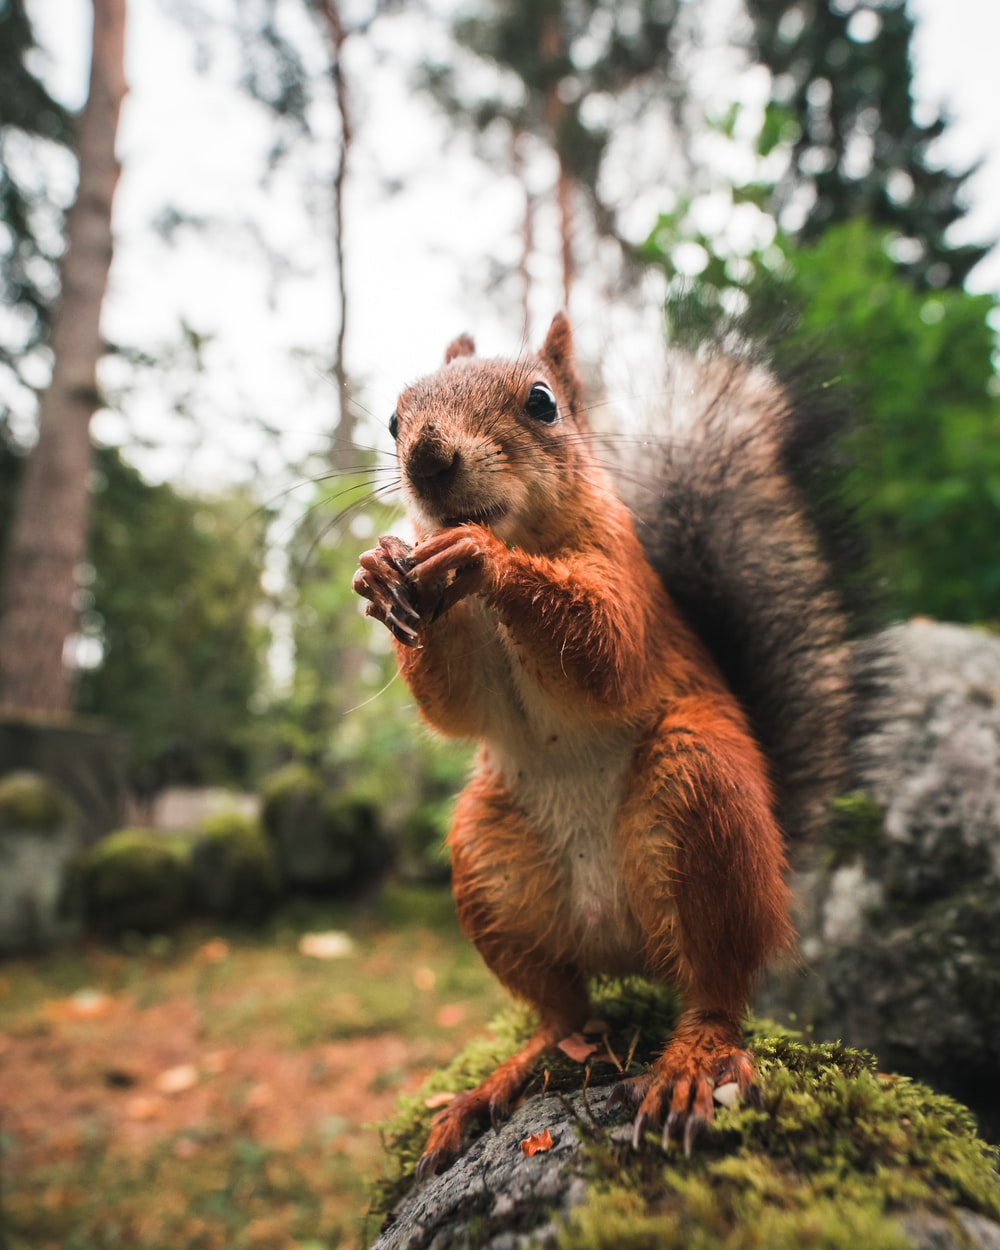 500+ Squirrel Pictures | Download Free Images on Unsplash